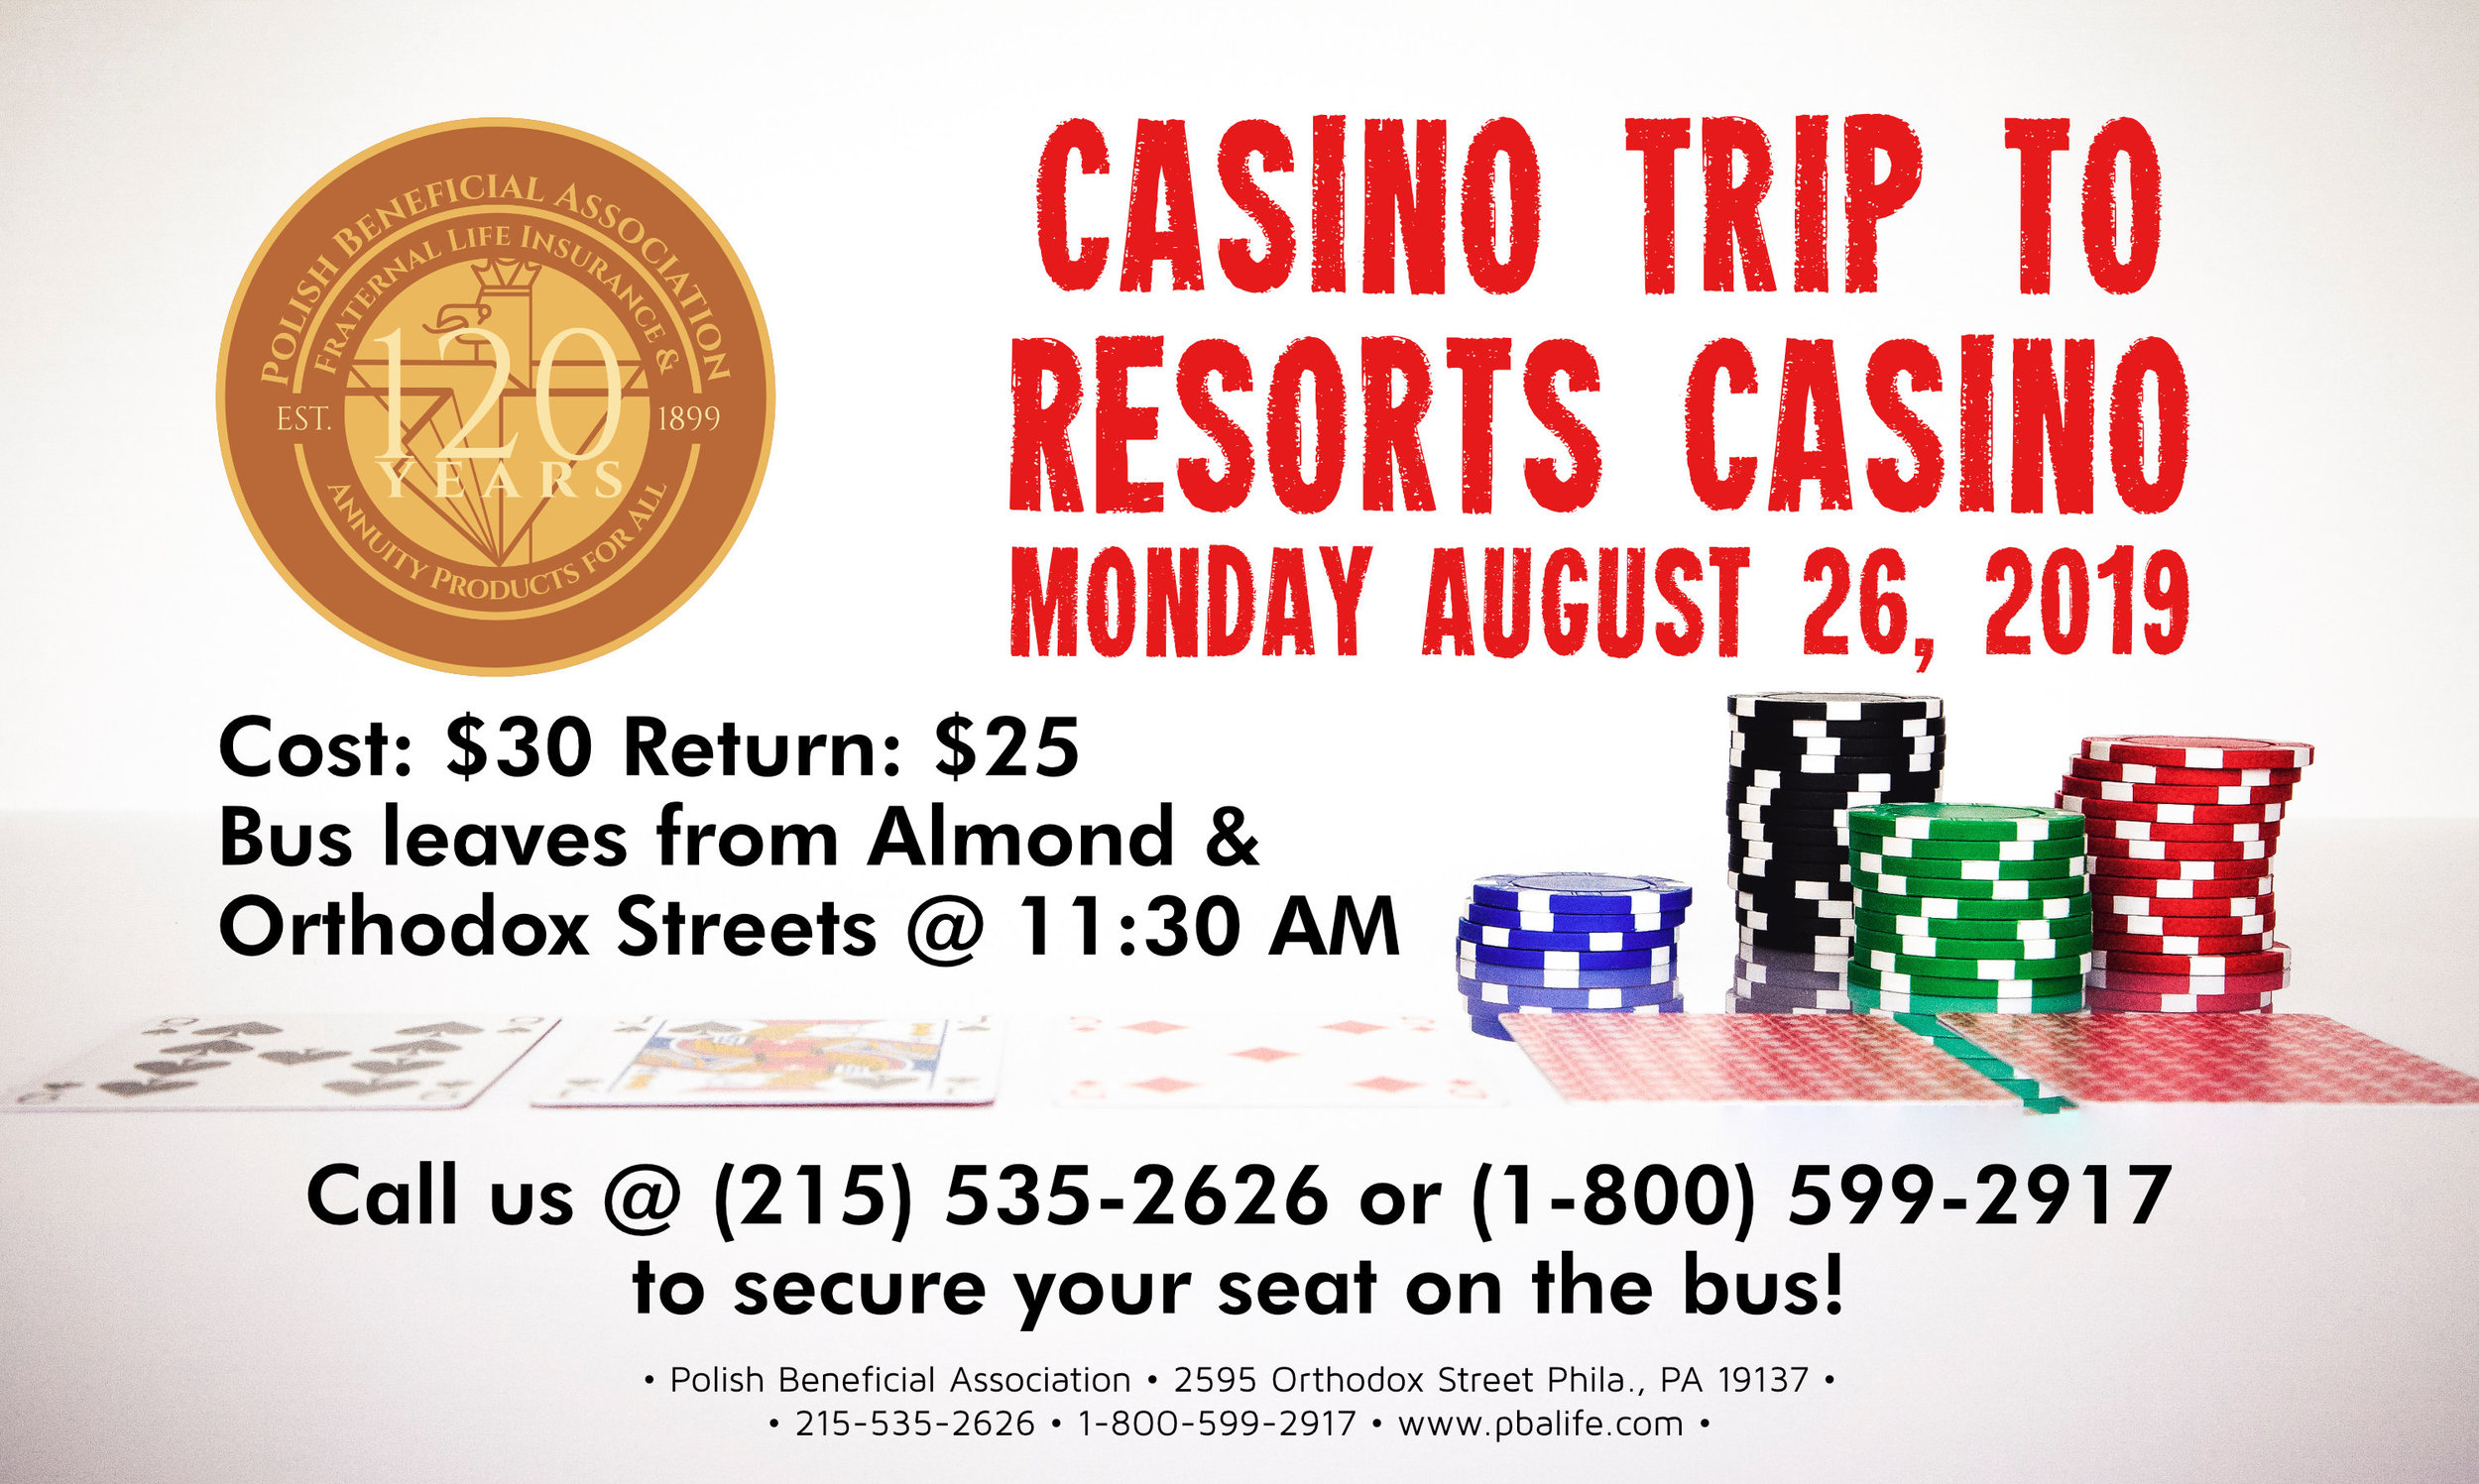 Looking for a fun day trip? Join us for our bus trip to Resorts Casino on Monday August 26, 2019 @ 11:30 AM.